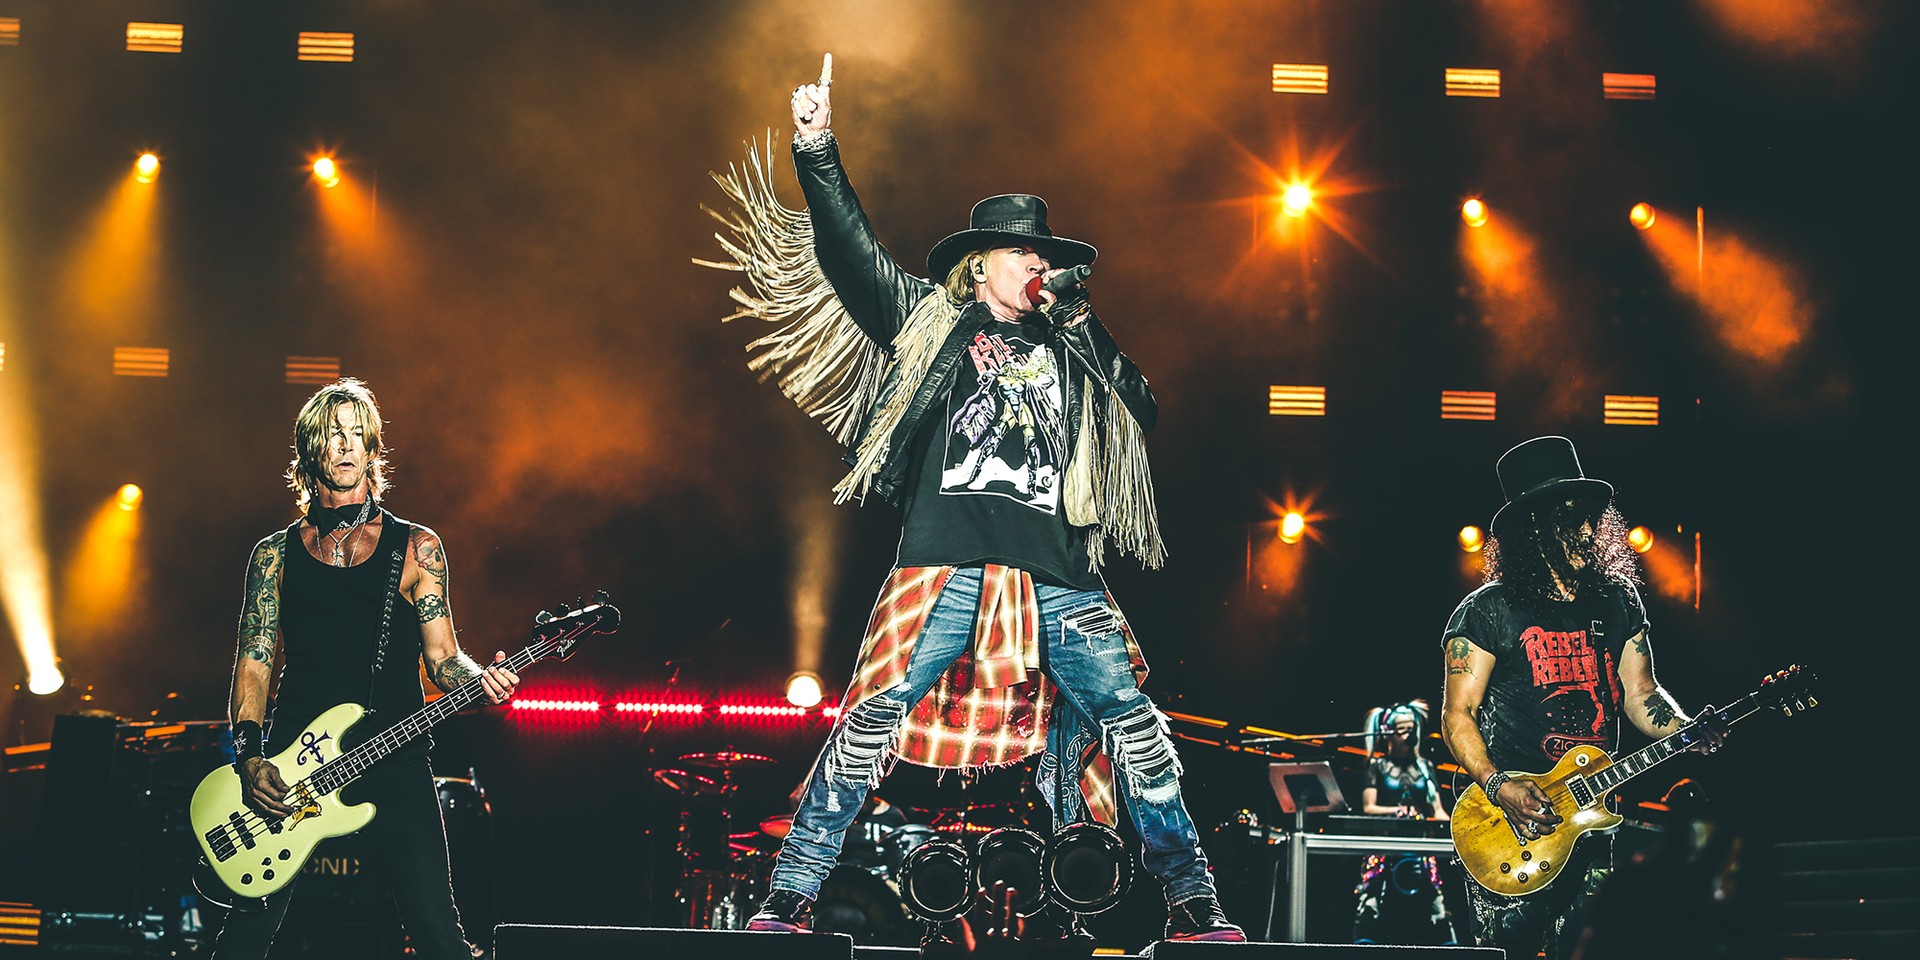 It's official: Guns N' Roses are coming to Singapore for their only Southeast Asian date